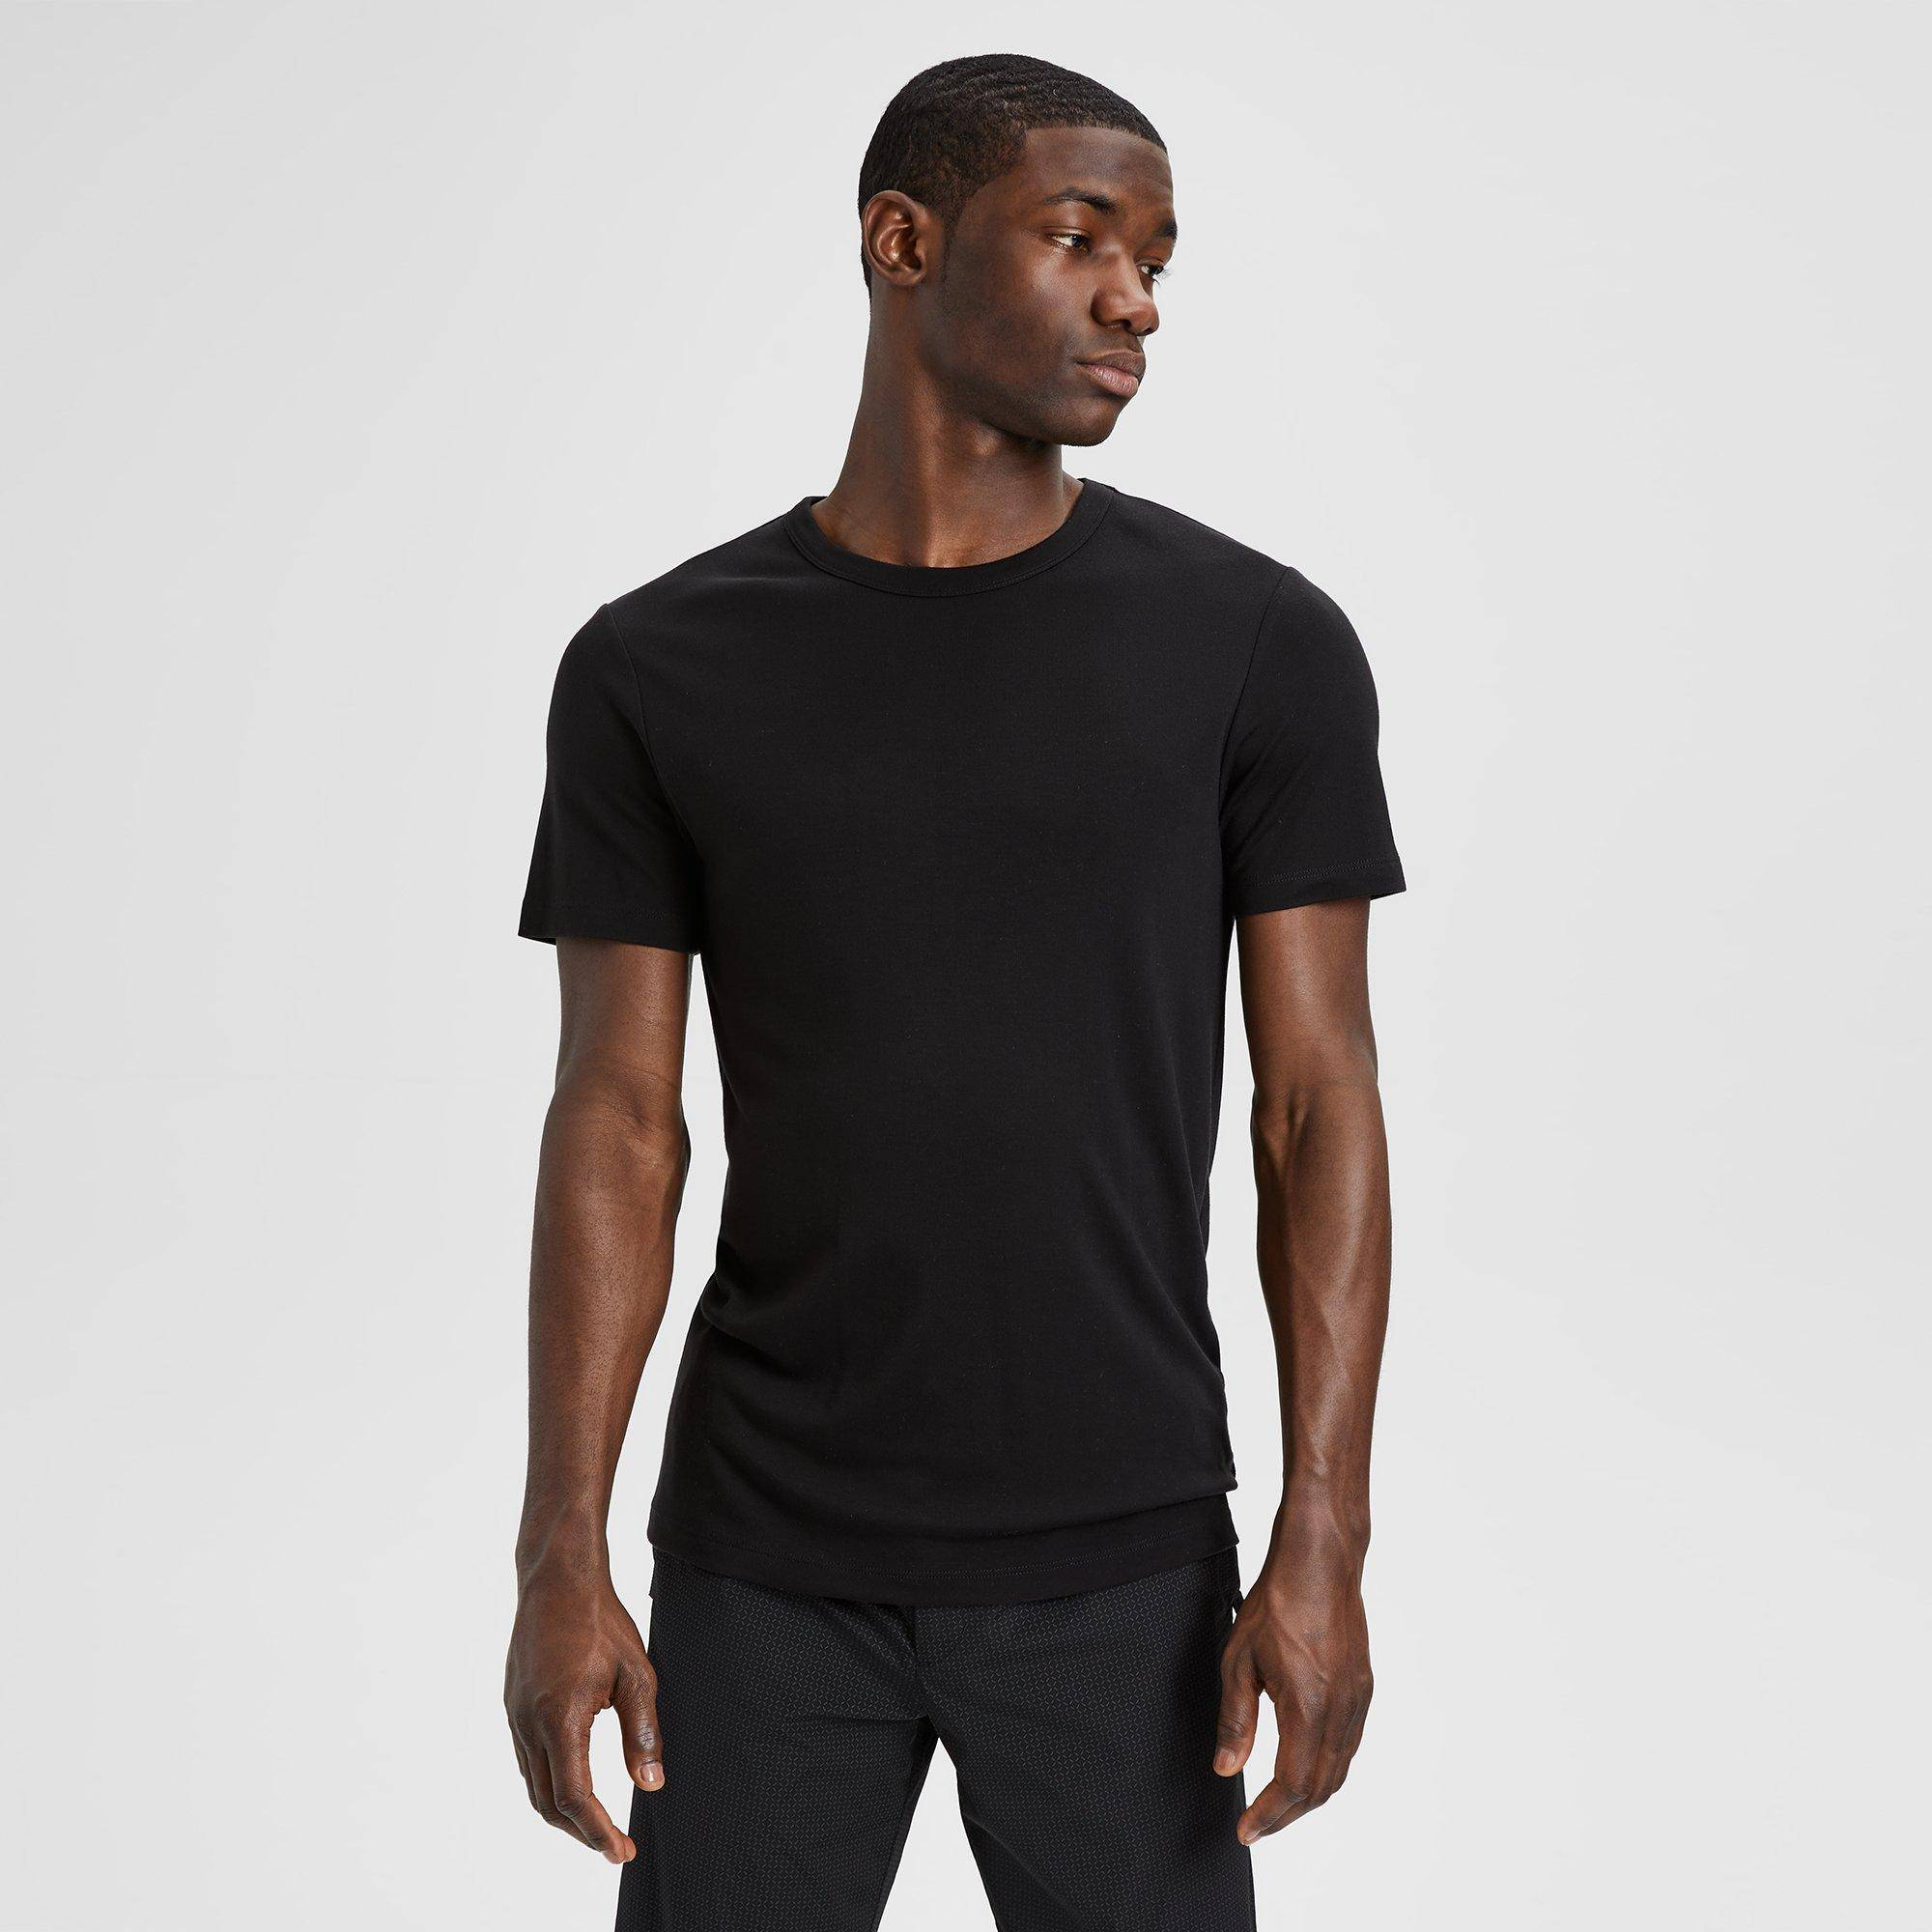 Theory Lyocell Essential Tee  - BLACK - male - Size: Extra Small